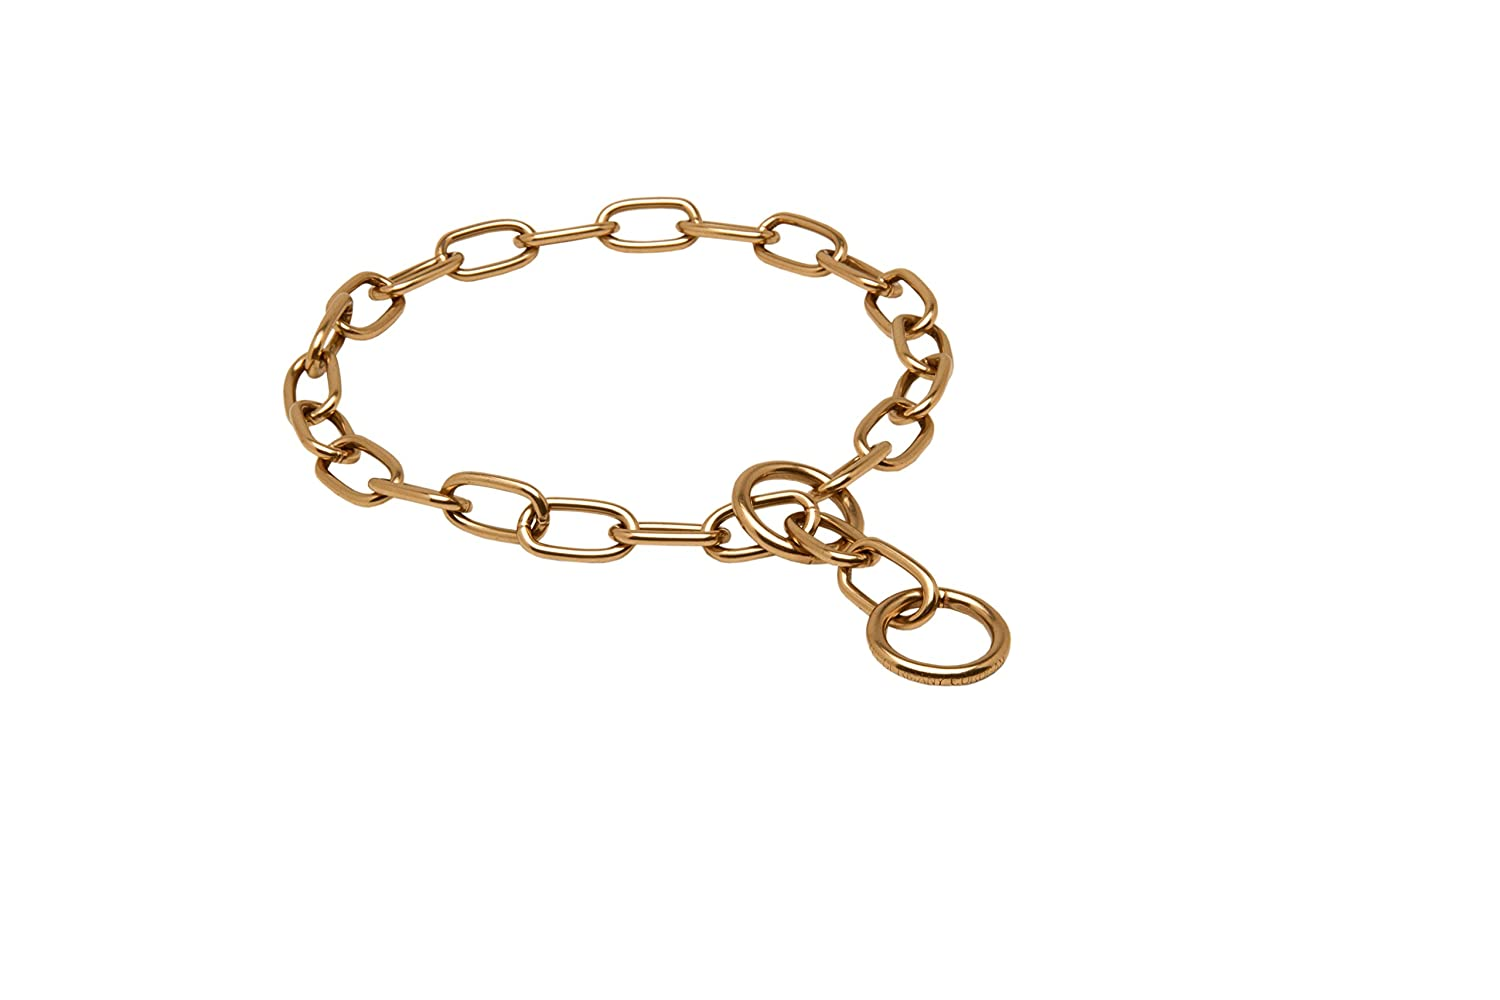 Herm Sprenger Curogan Fur Saver Choke Collar 1 9 inch (3 mm) Link Diameter Size 23 3 4 inch (60,5 cm) for Dogs with Neck Size of 21-22 inch (53-55 cm)